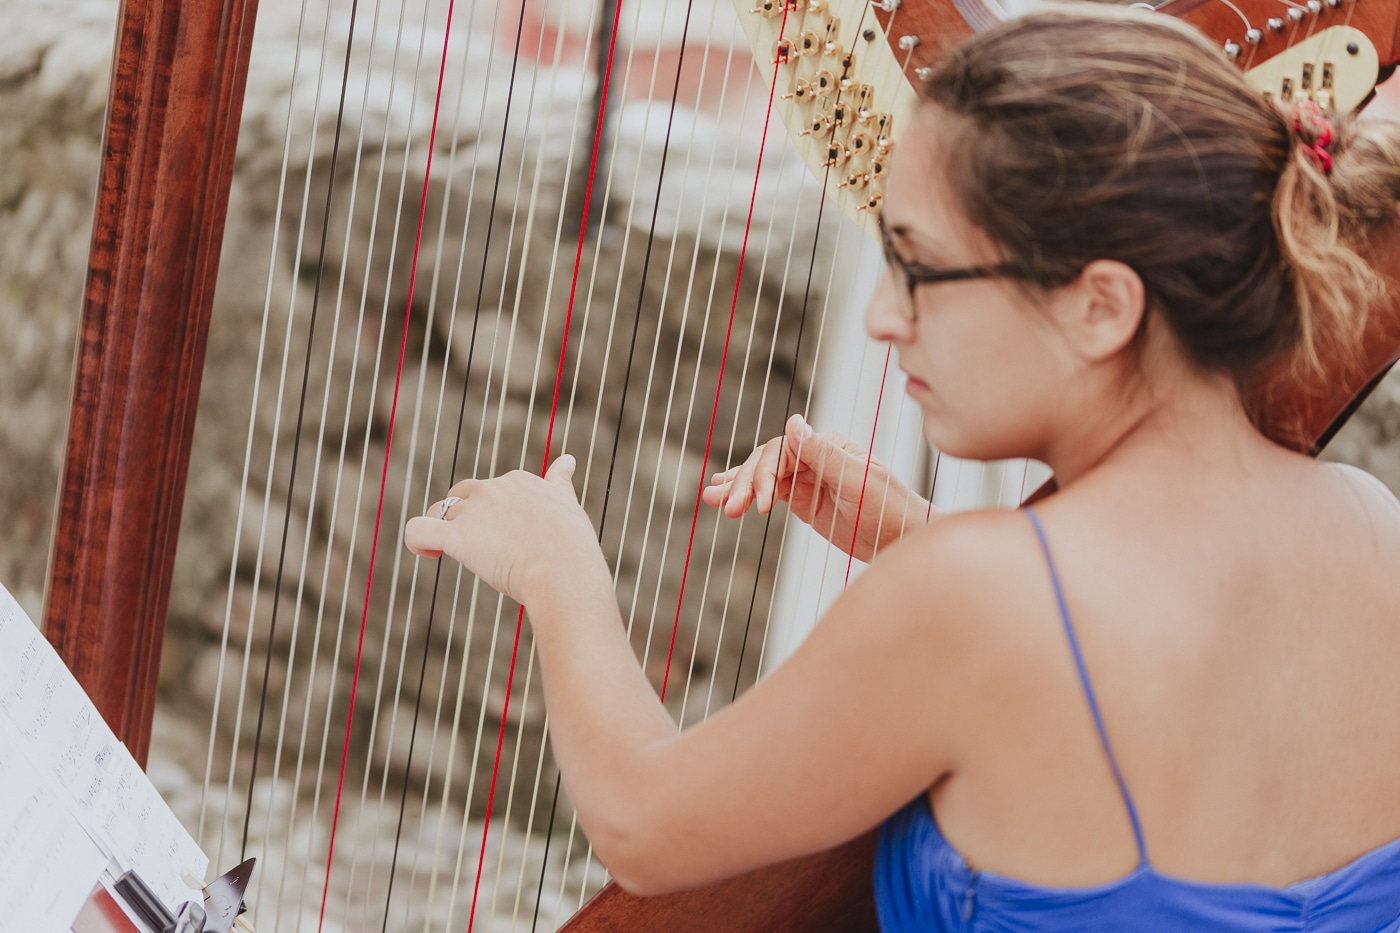 Harpest playing in blue dress and glasses with hair tied back